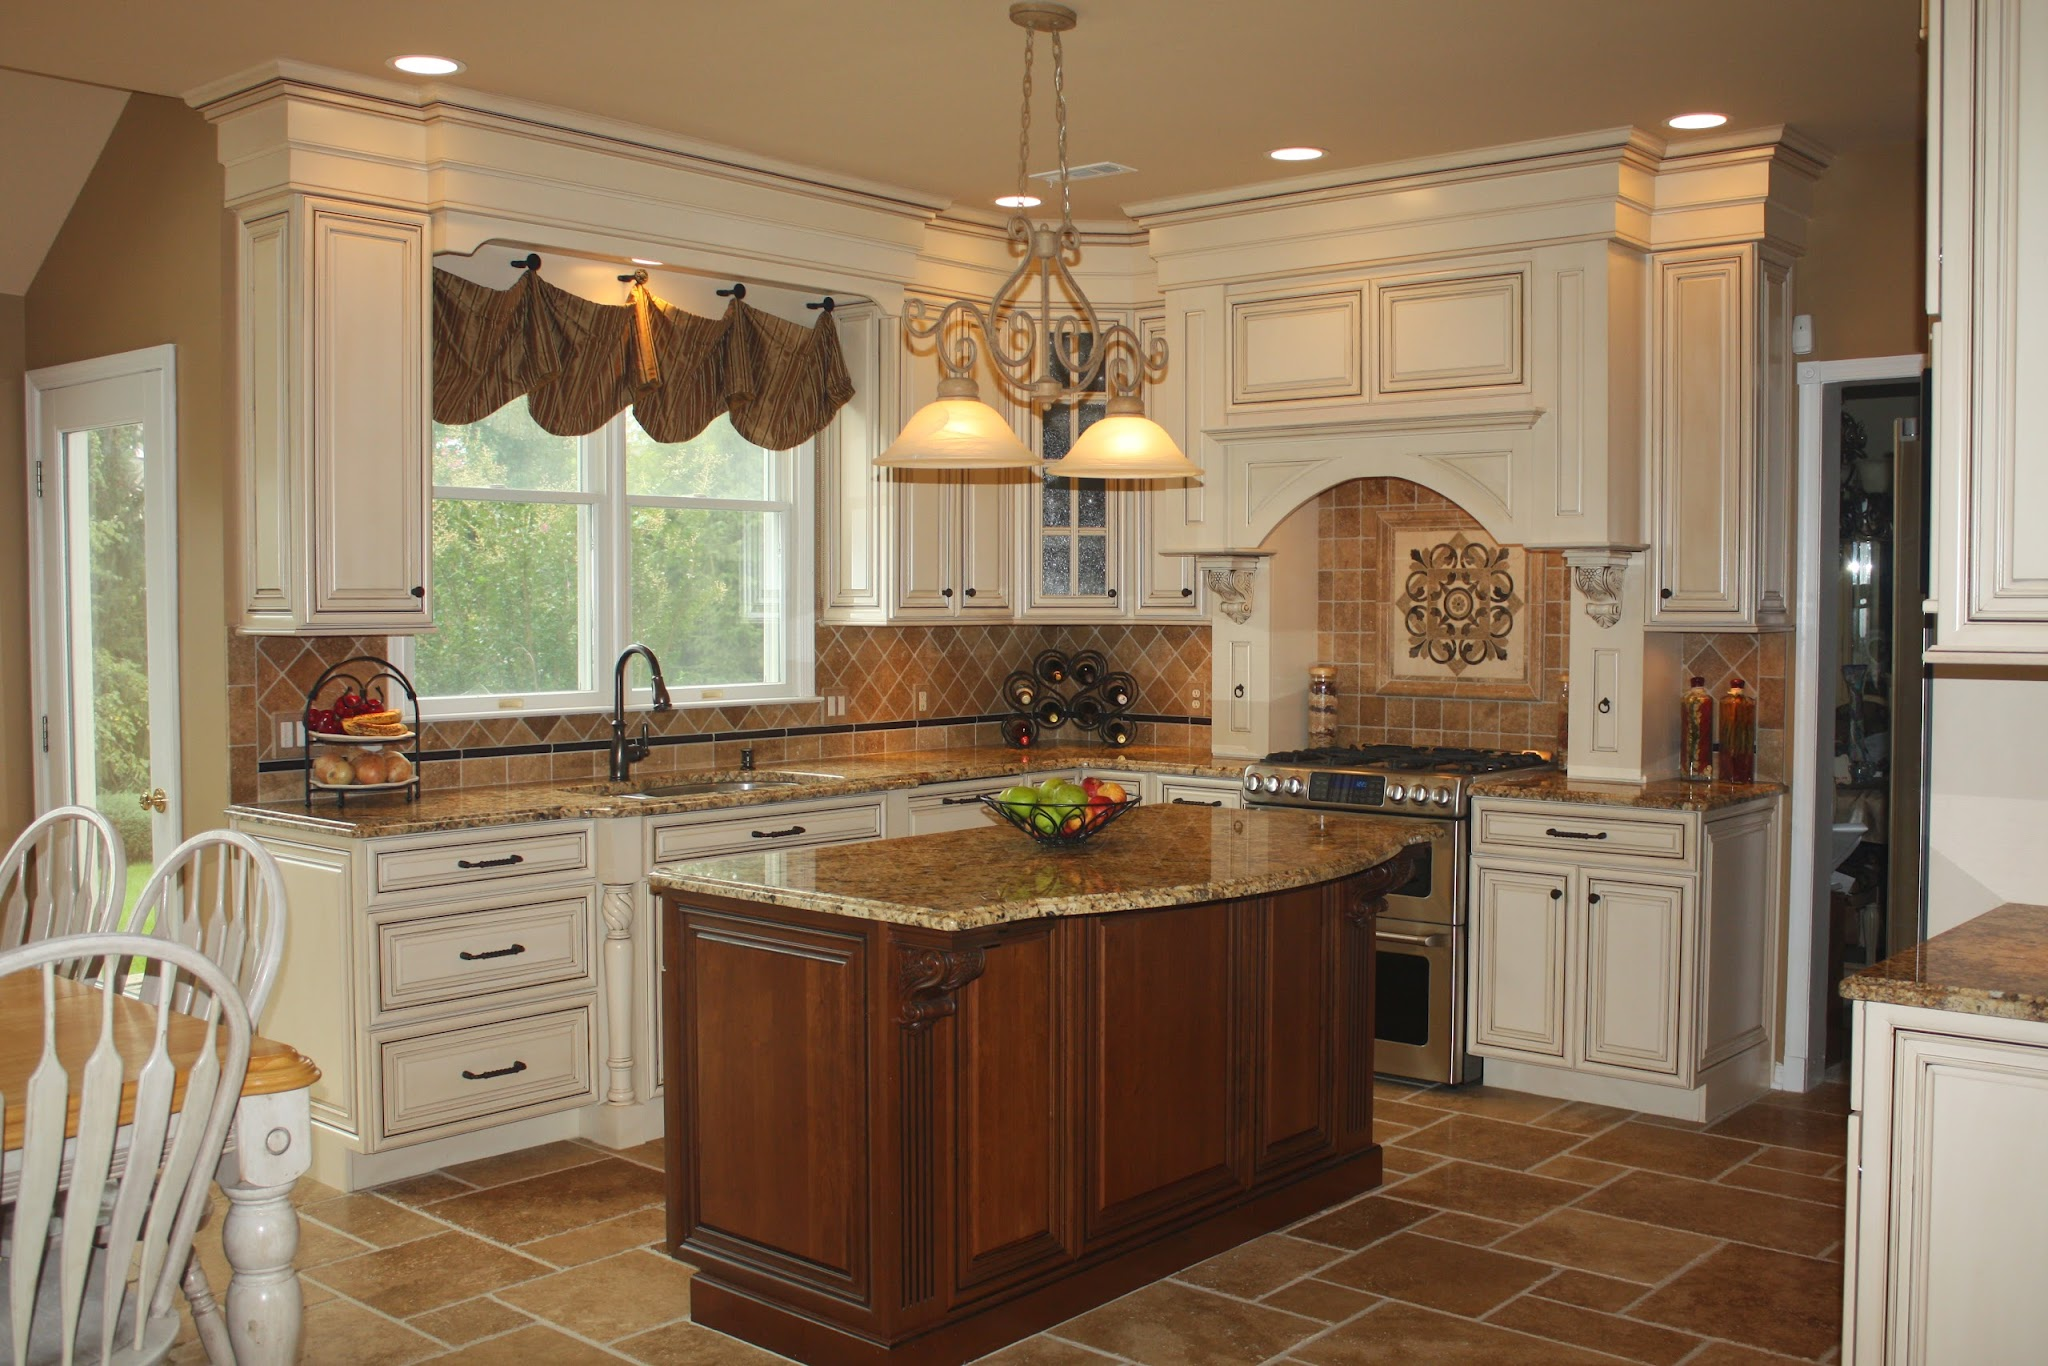 Houzz kitchen dreams house furniture for Kitchen improvements